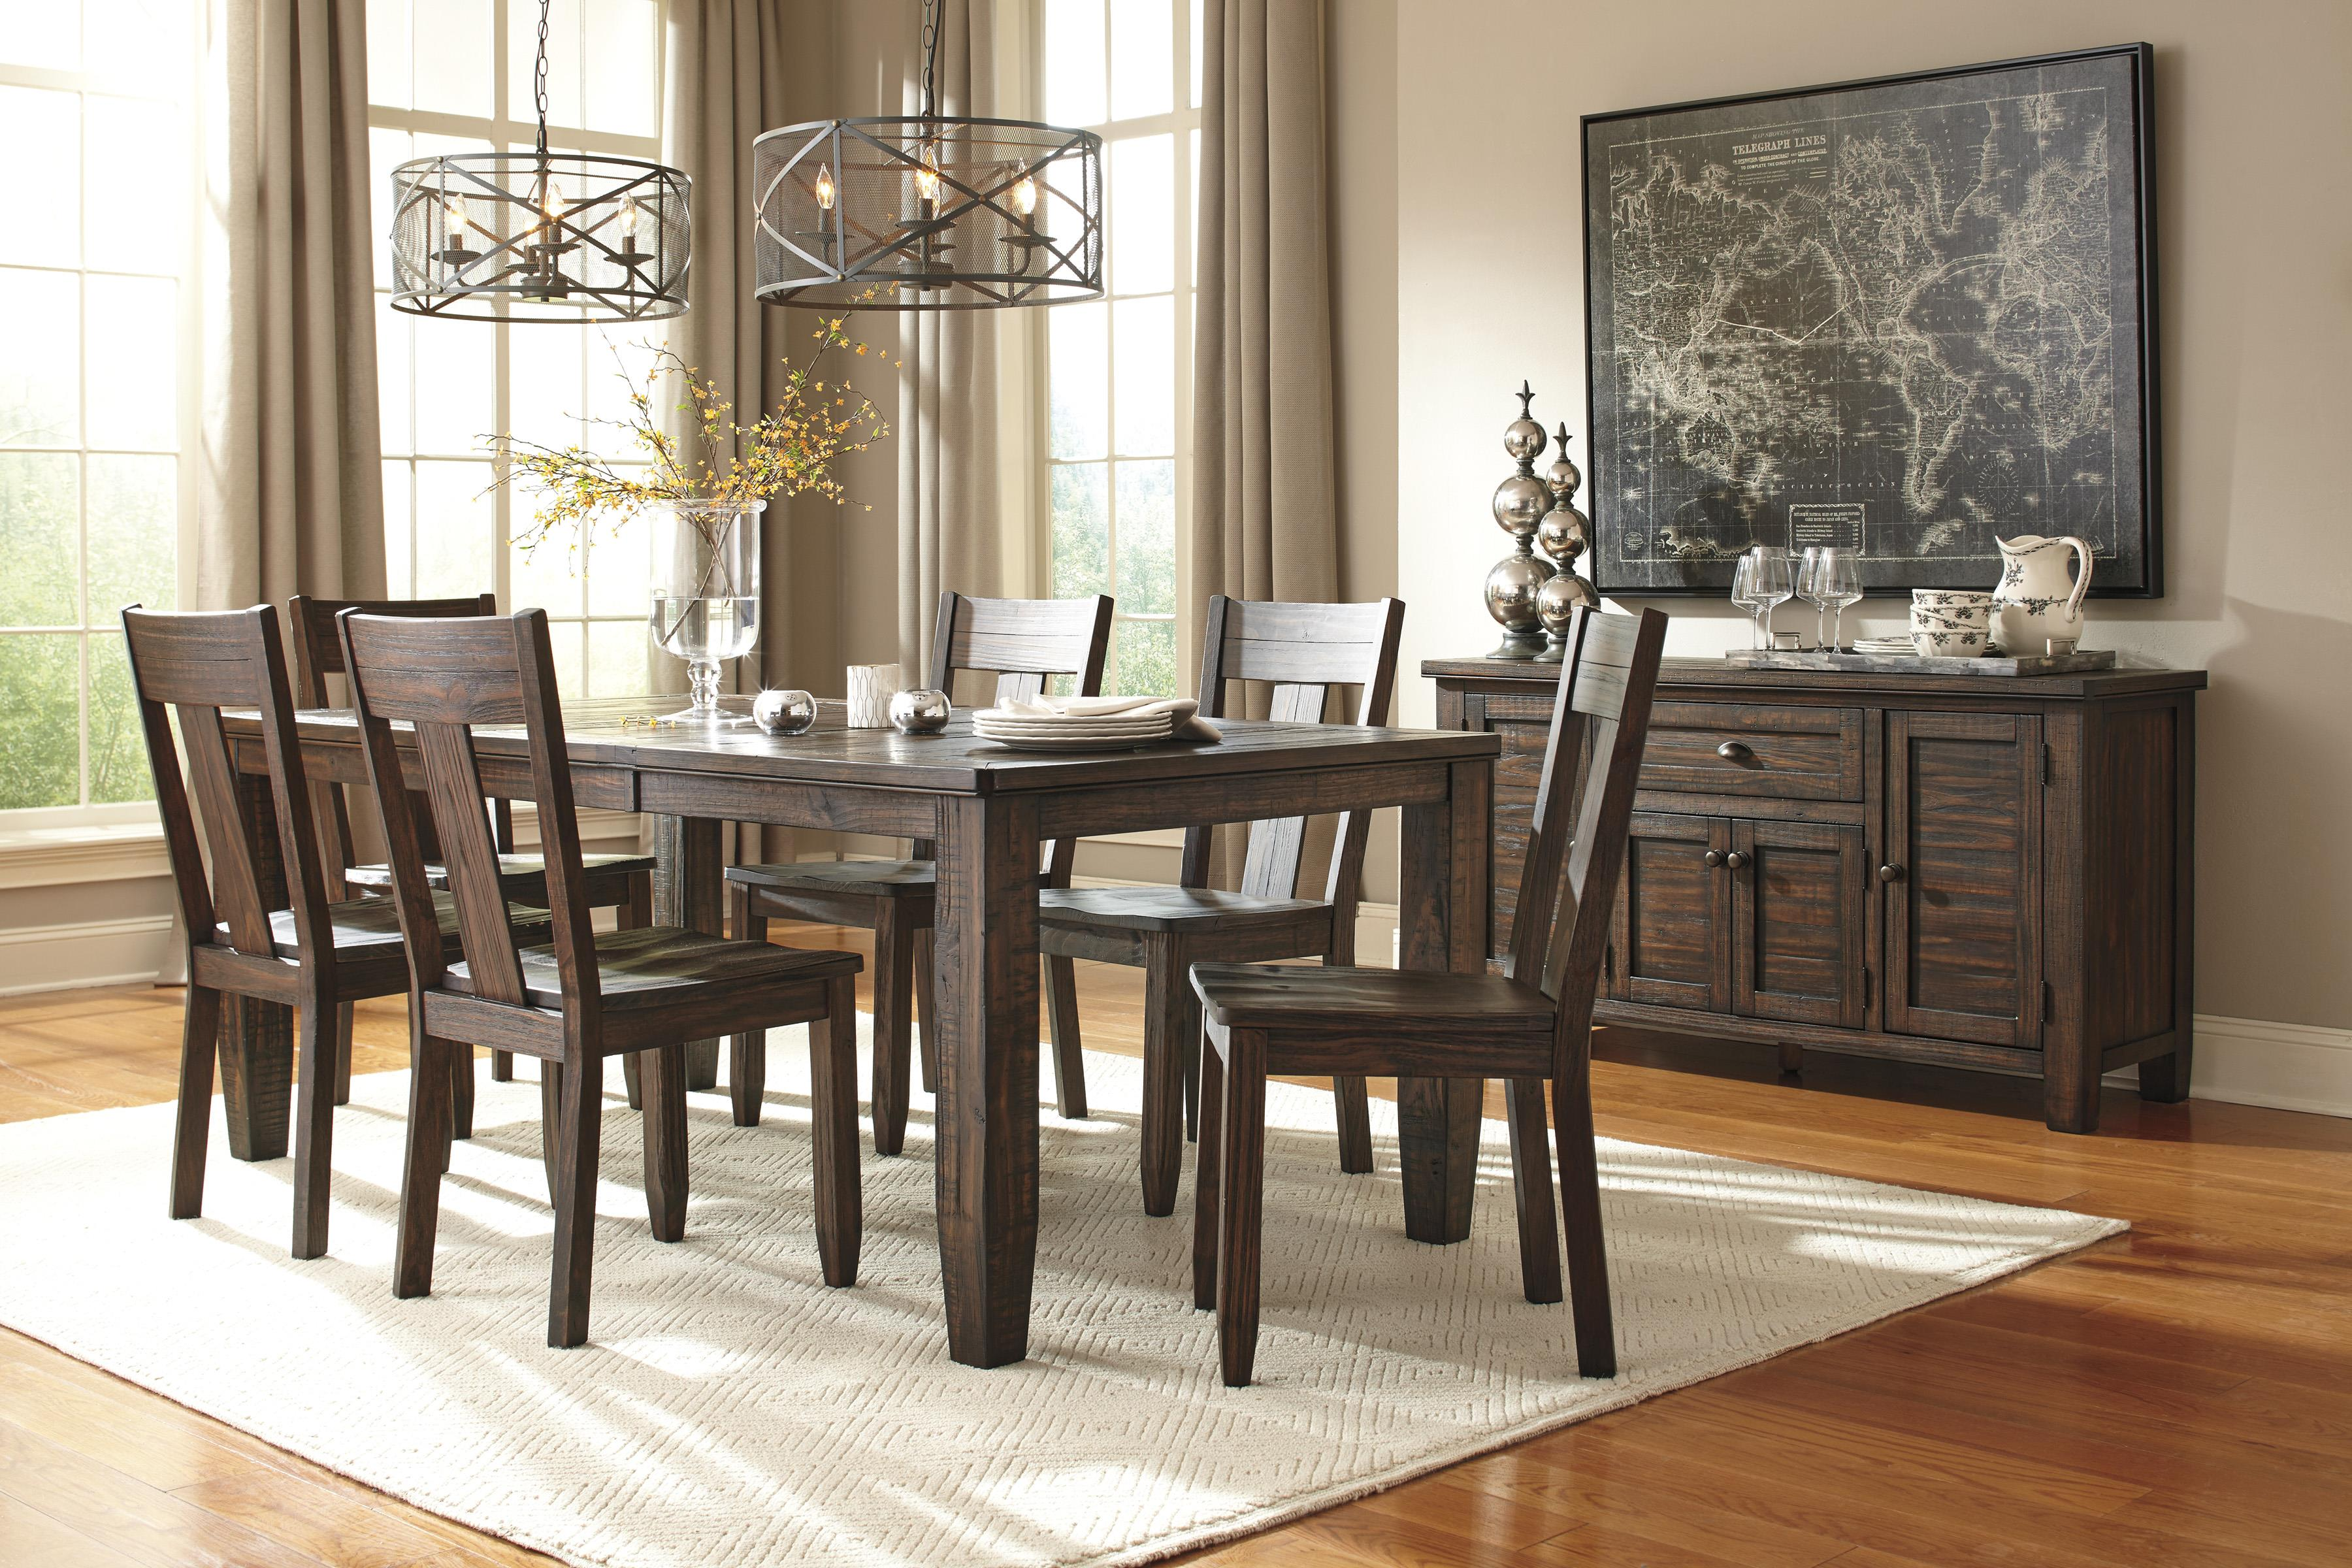 Signature Design by Ashley Trudell Casual Dining Room Group - Item Number: D658 Dining Room Group 6